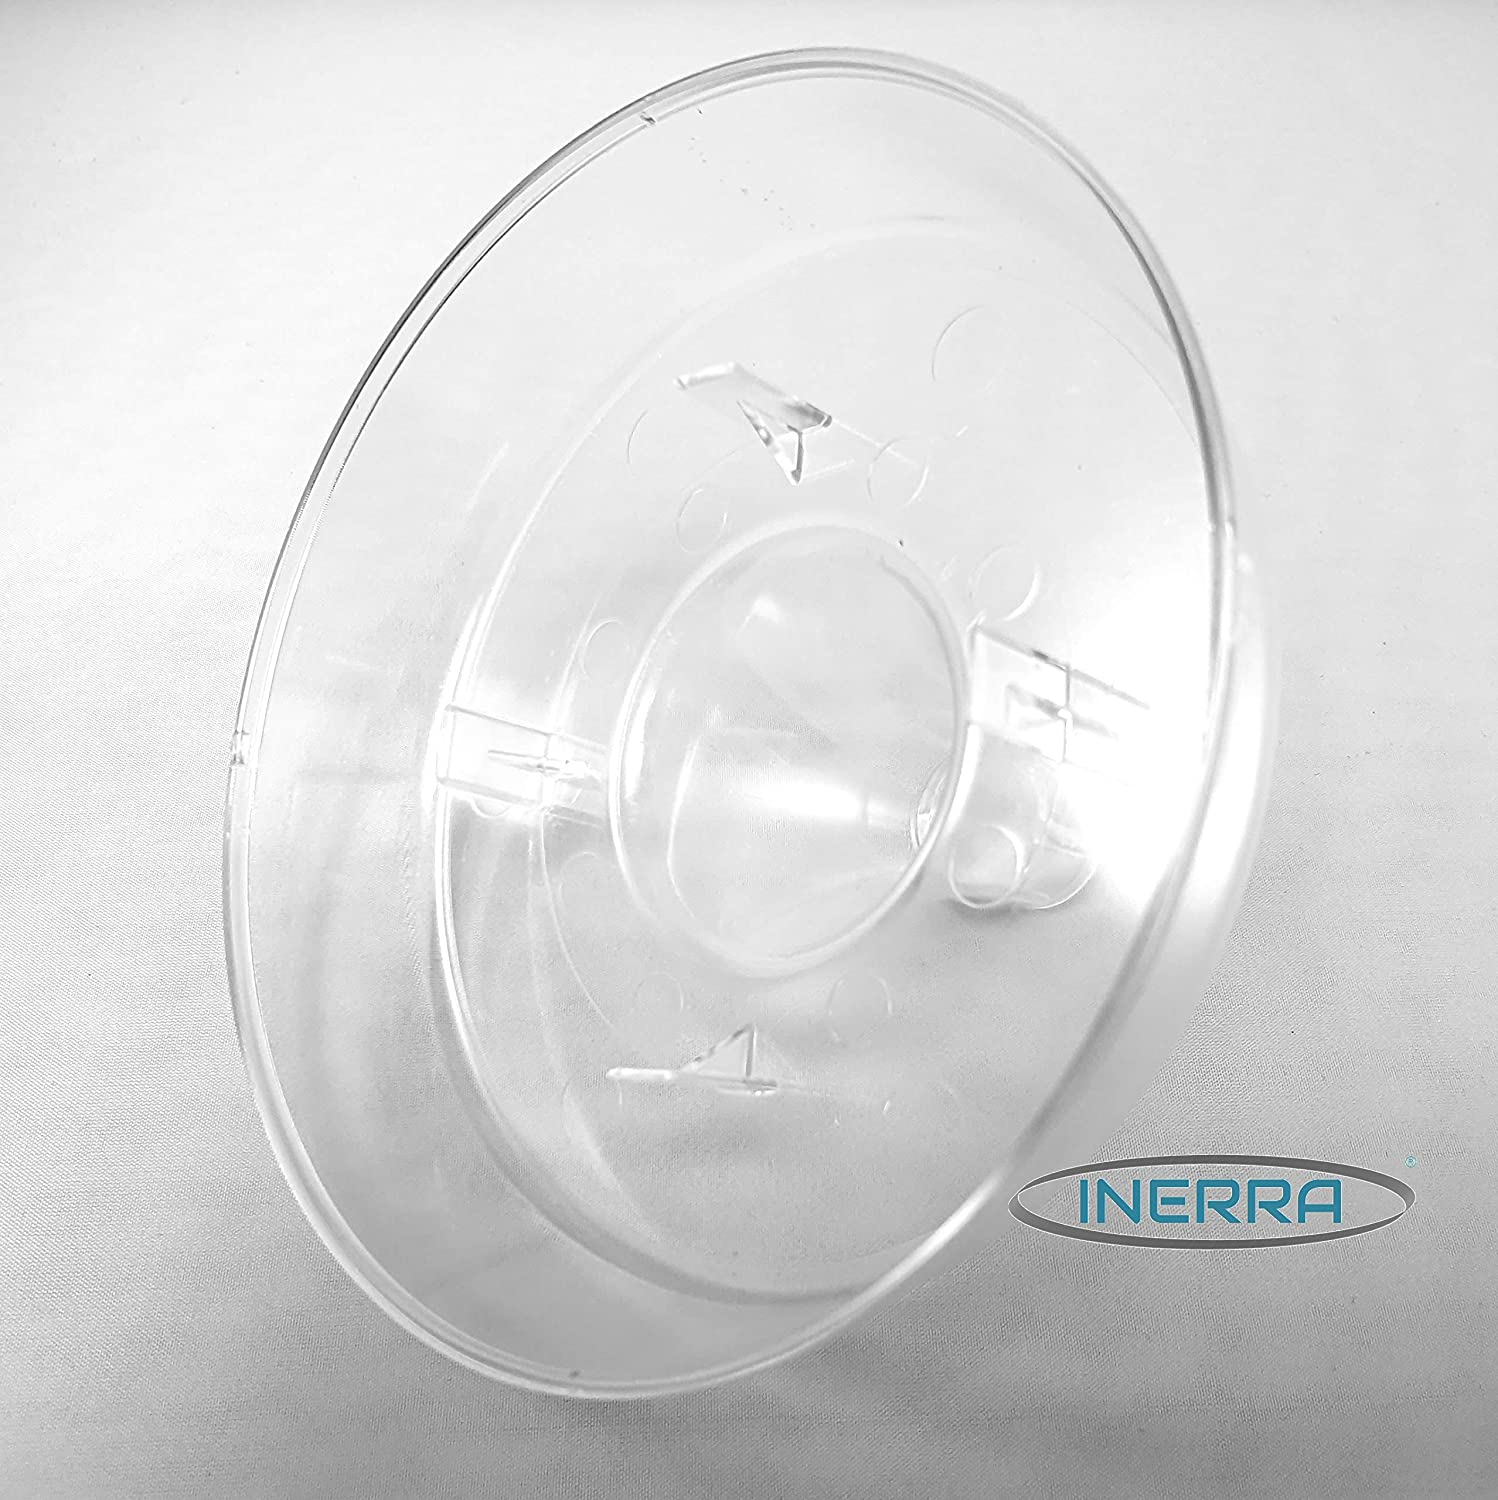 INERRA Compote Bowls Pack of 3 Clear Round Plastic Florist Dish for Foam